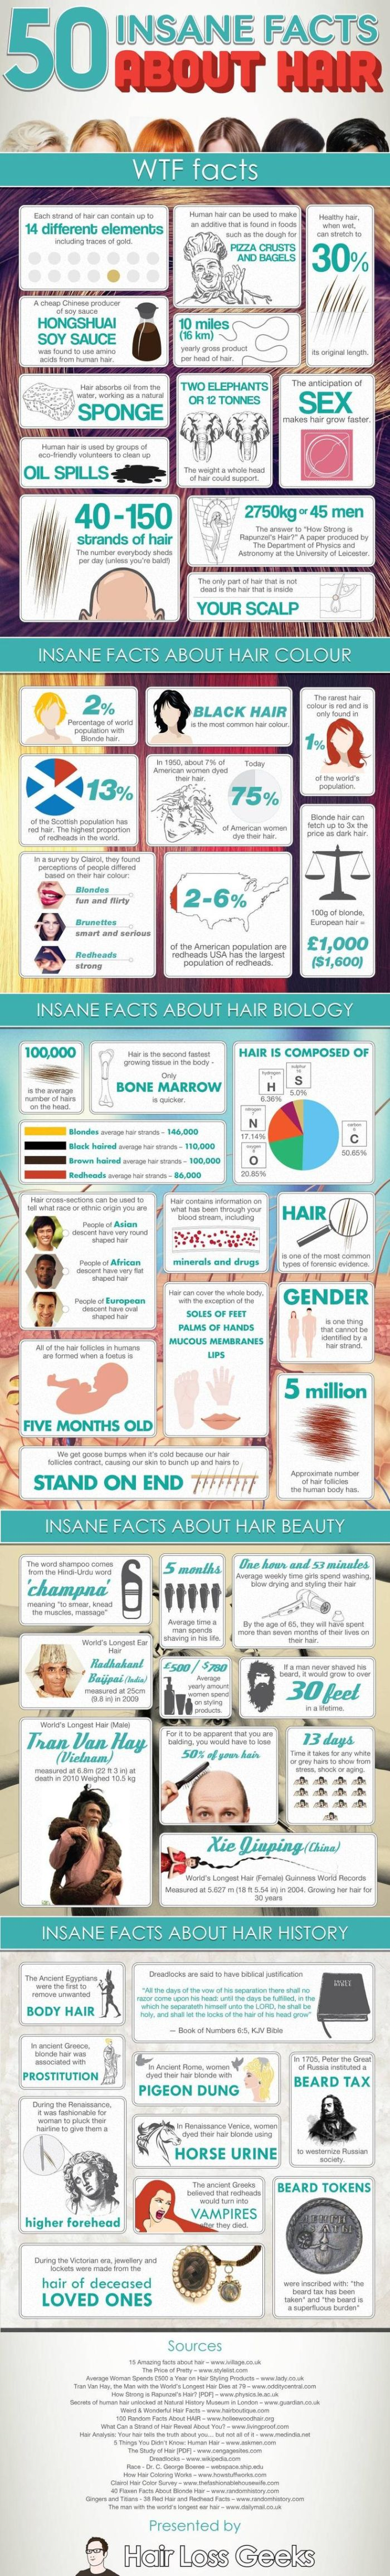 50 Insane Facts About Hair (infographic)